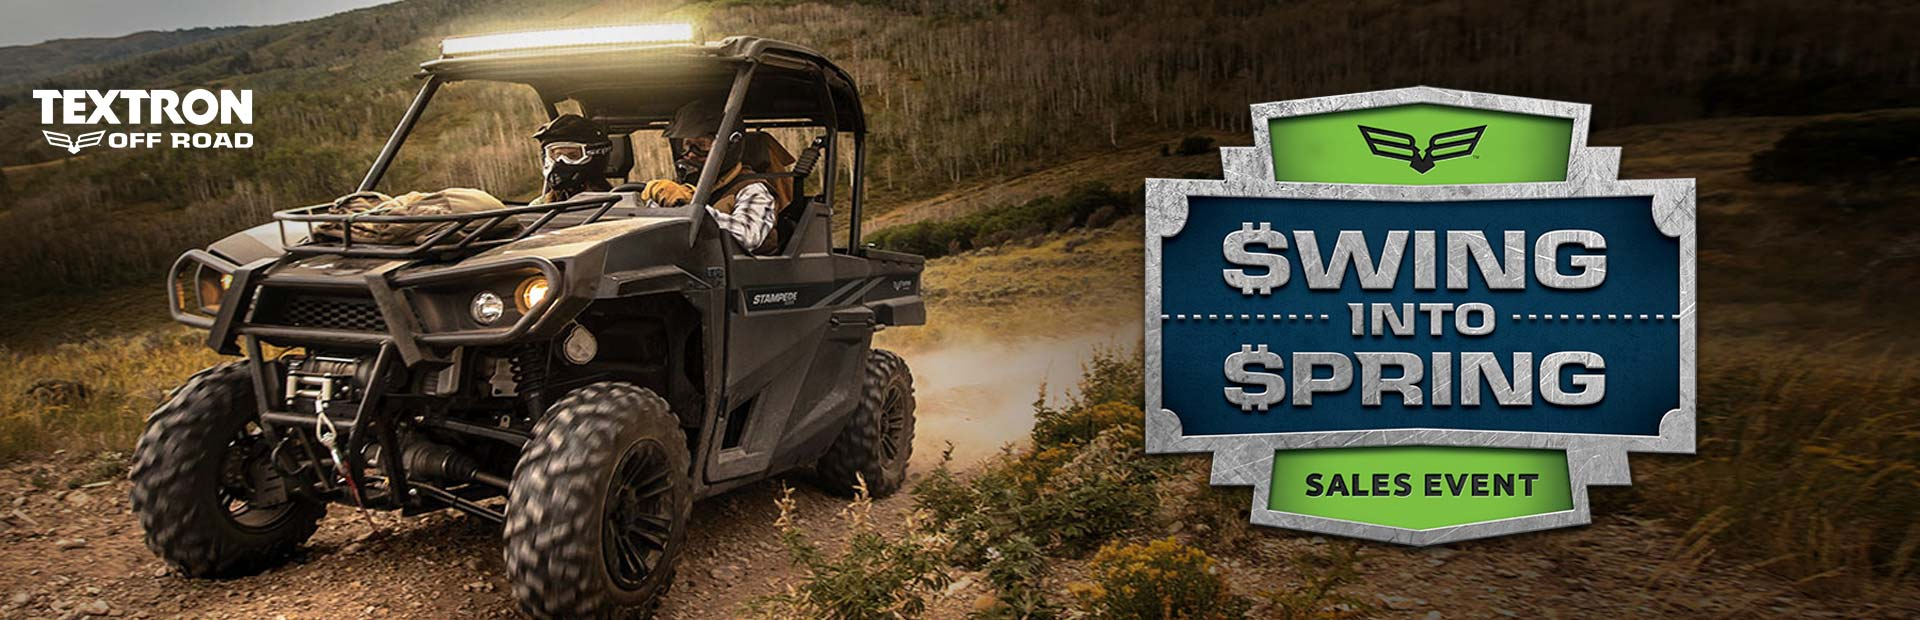 Textron Off Road: Swing Into Spring